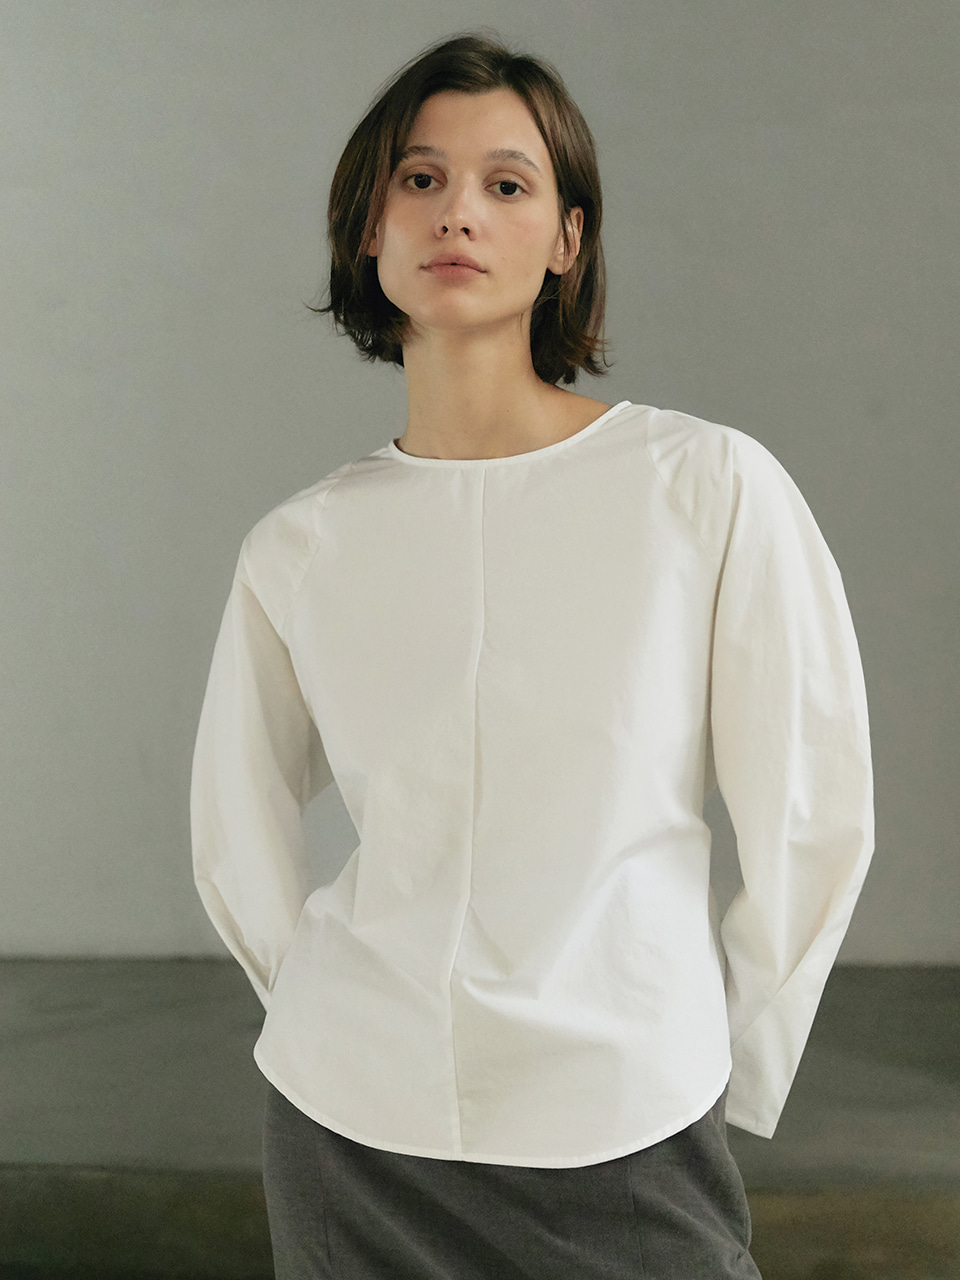 [9/23순차출고] Round volume blouse - White